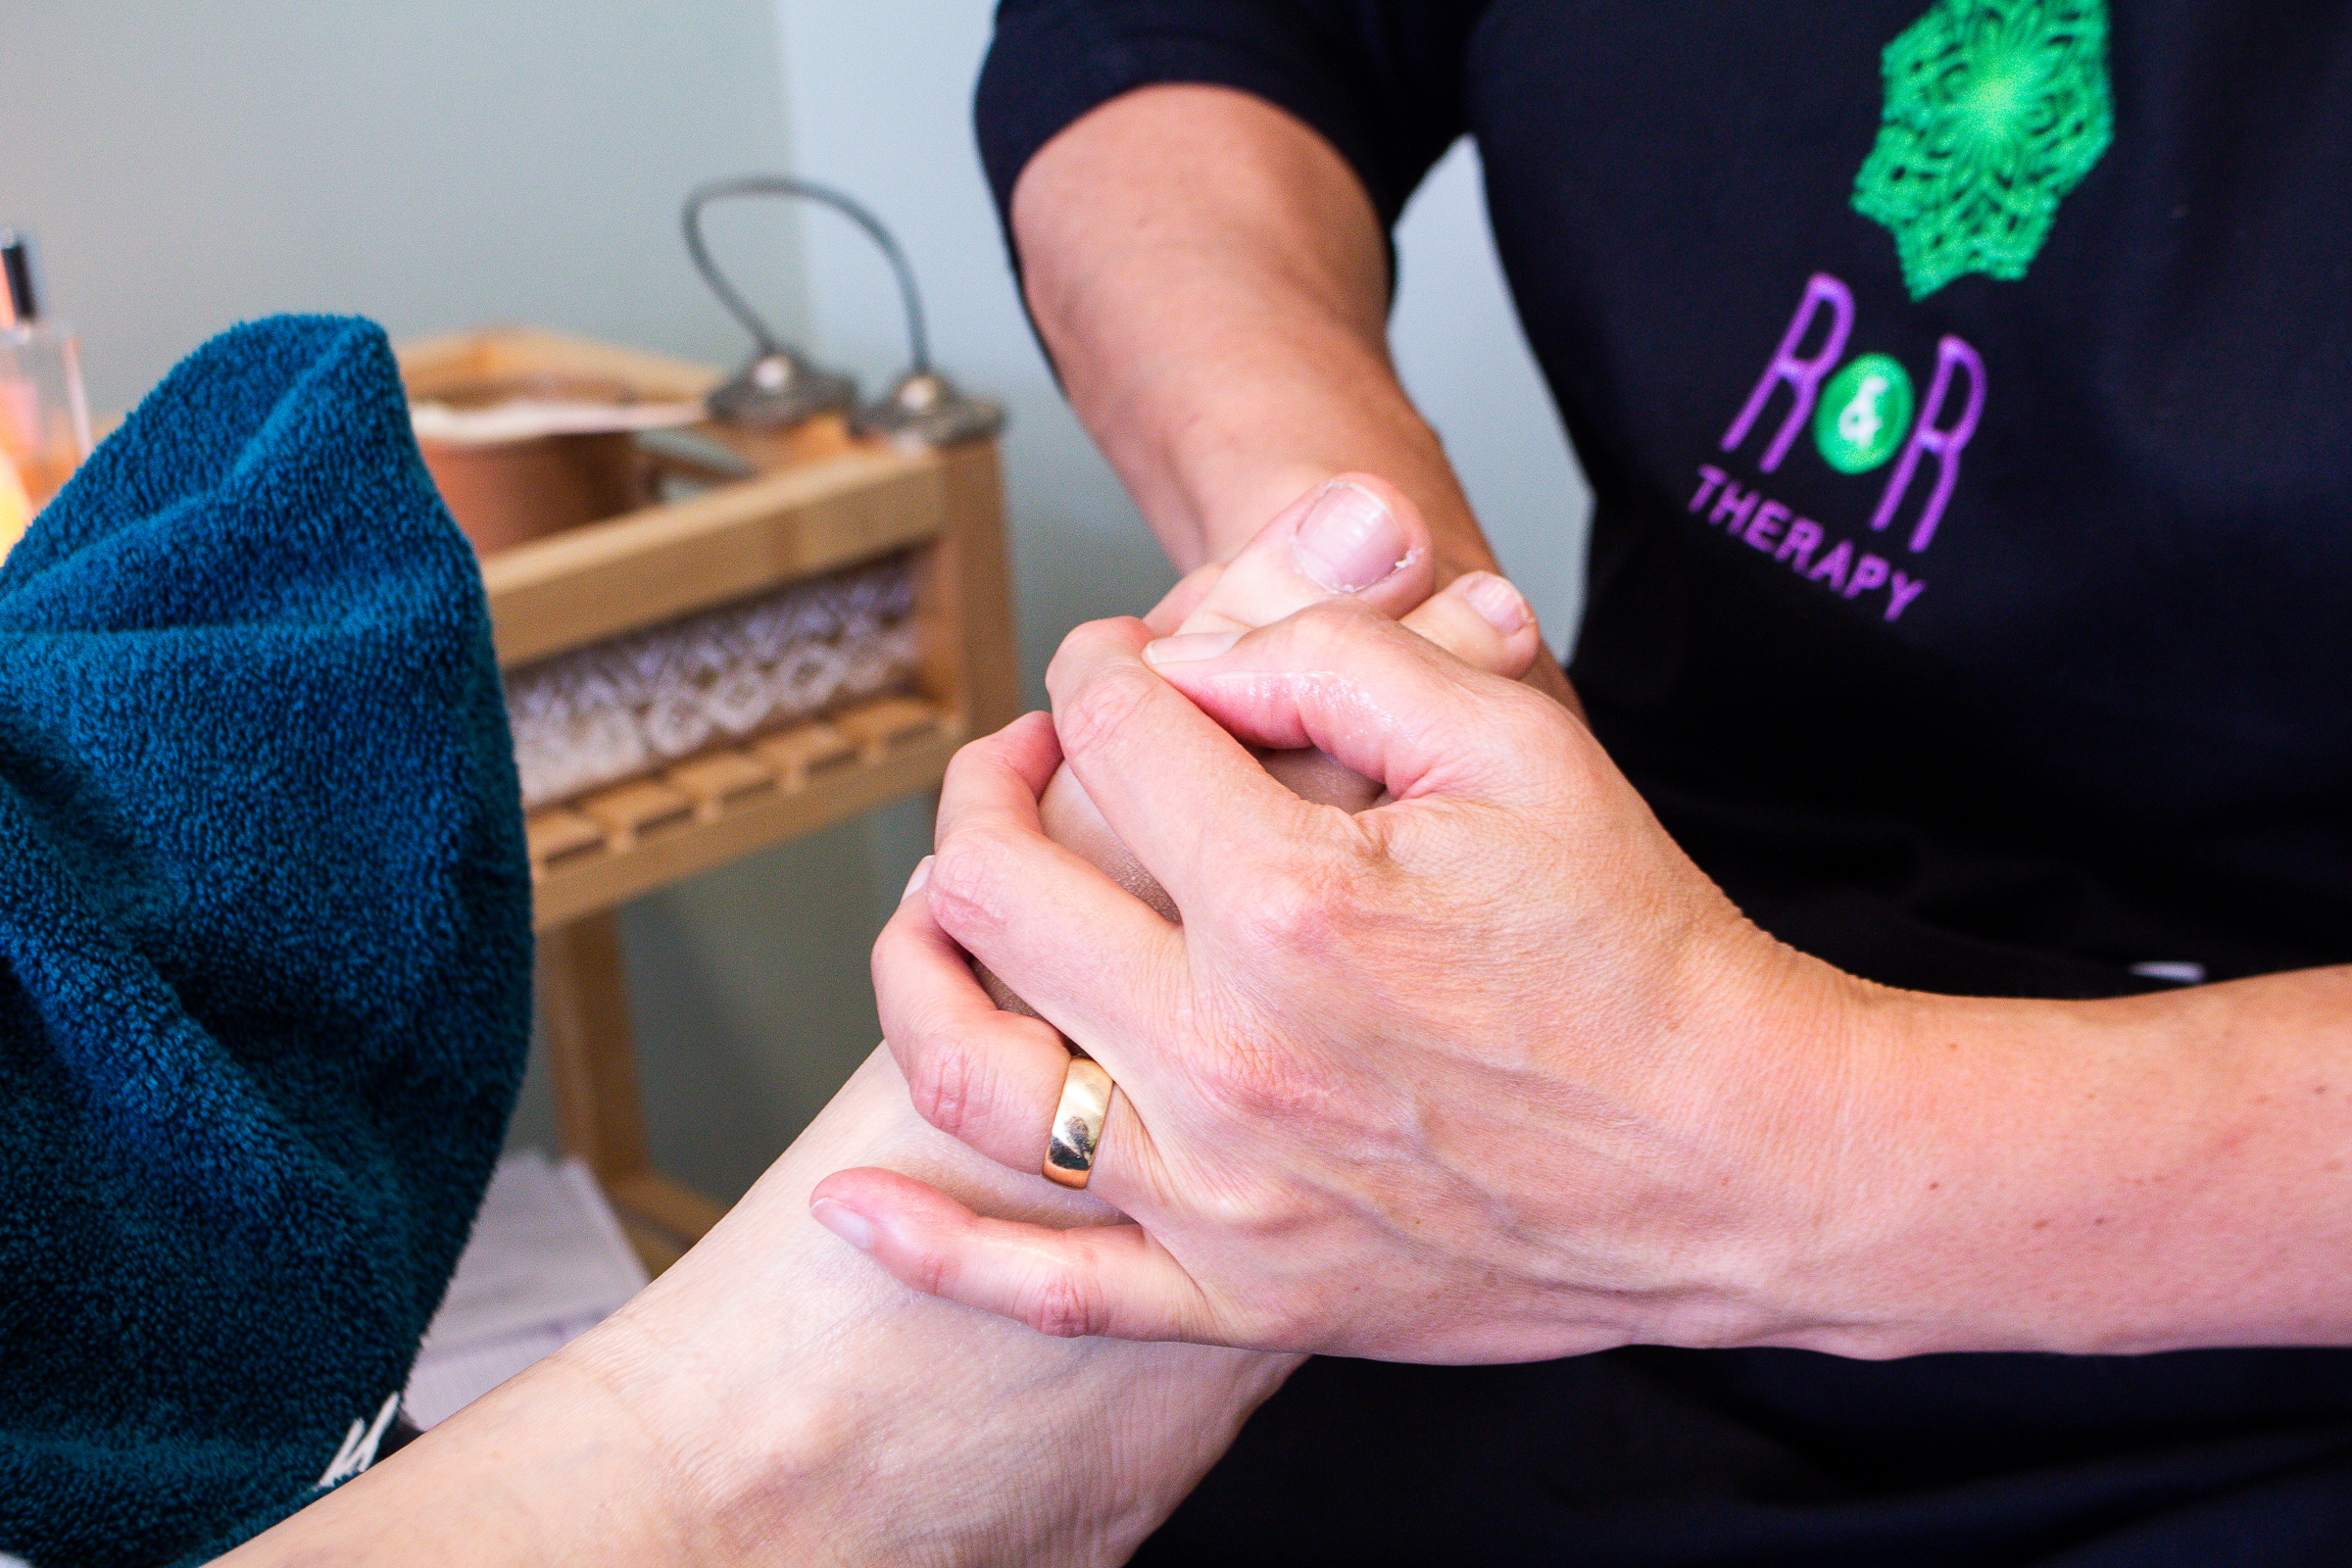 Have you ever tried reflexology? Here's why you should